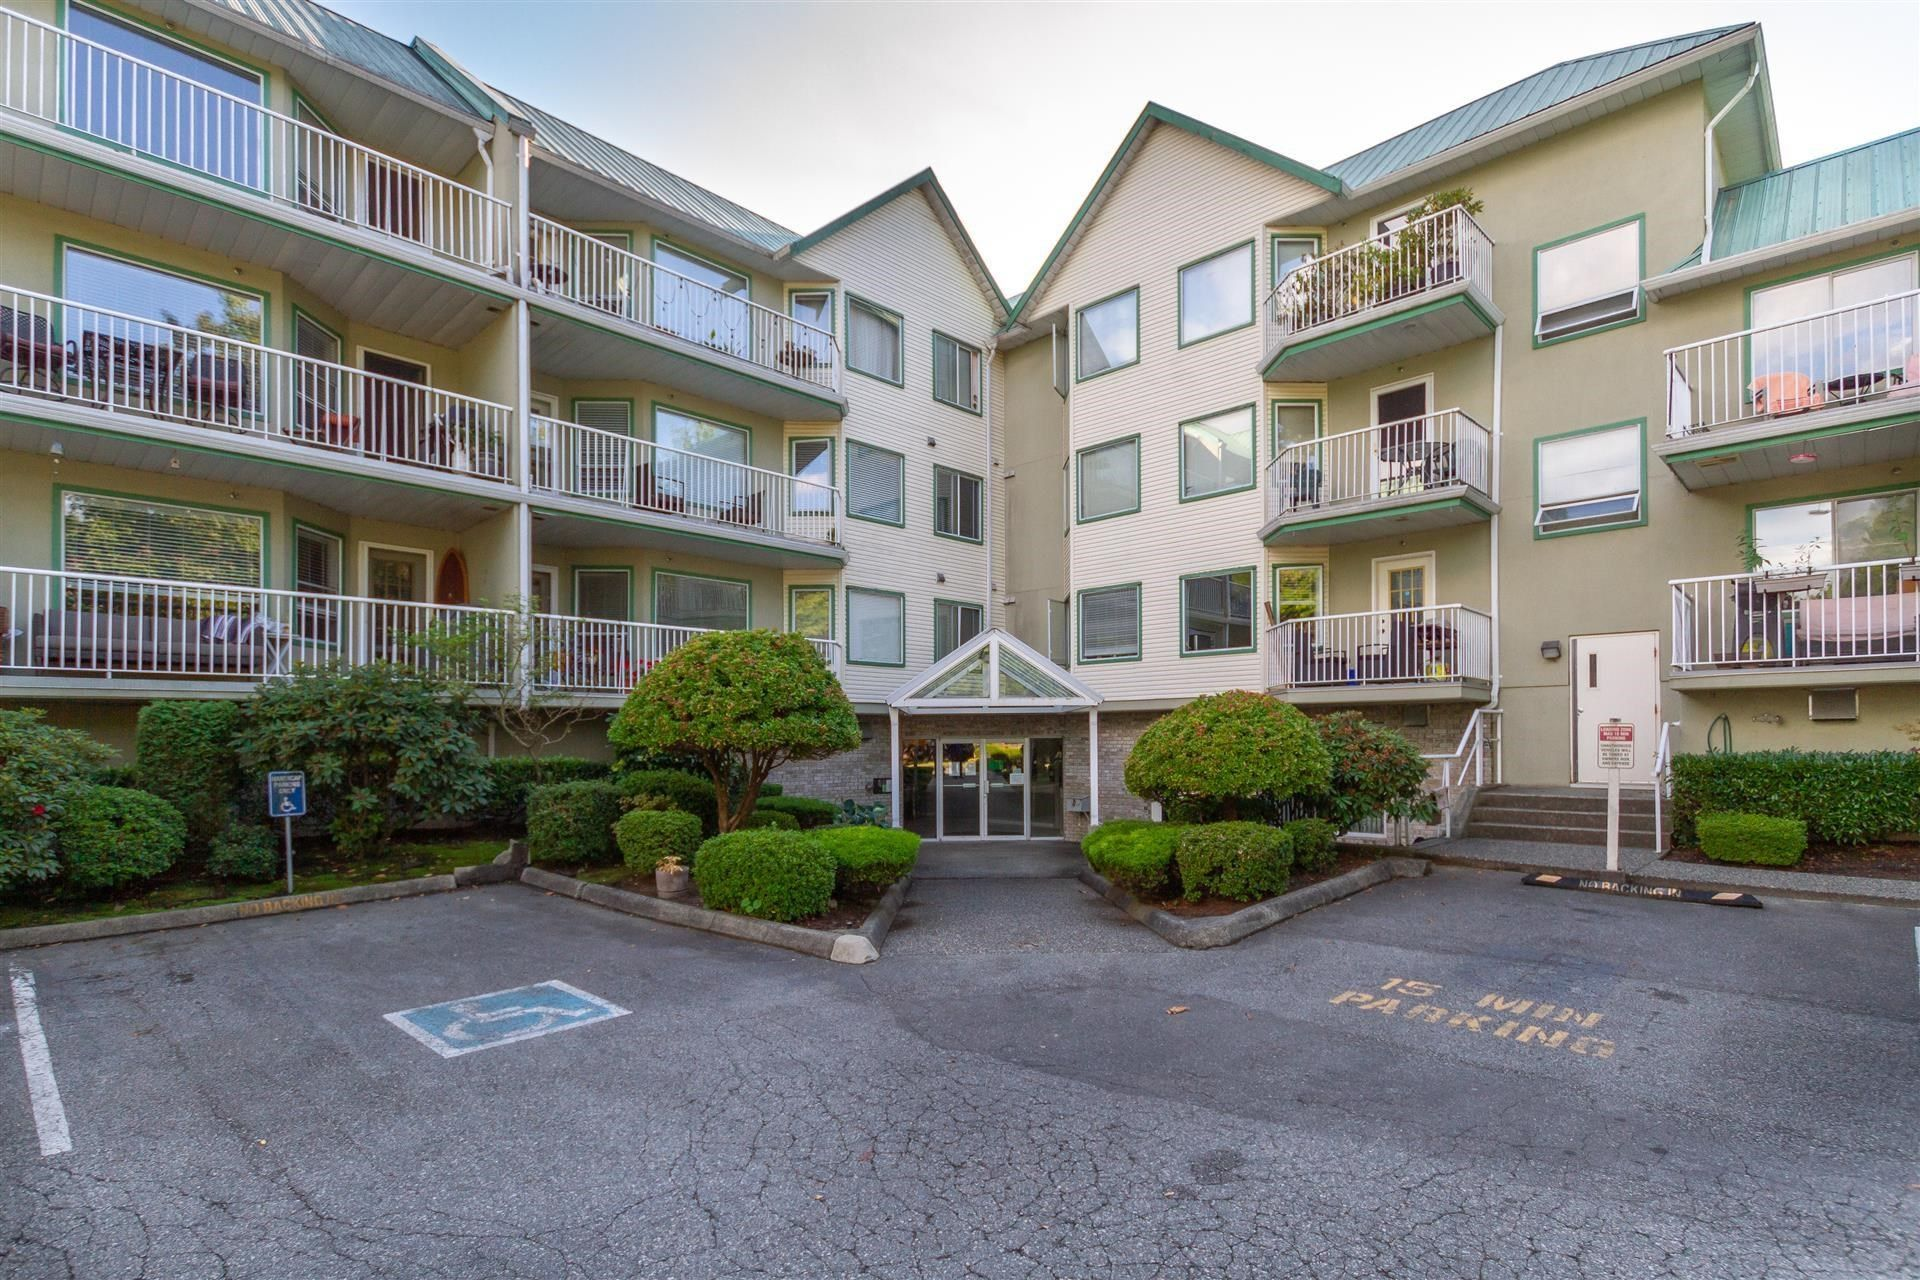 Main Photo: 109 19236 FORD Road in Pitt Meadows: Central Meadows Condo for sale : MLS®# R2615829